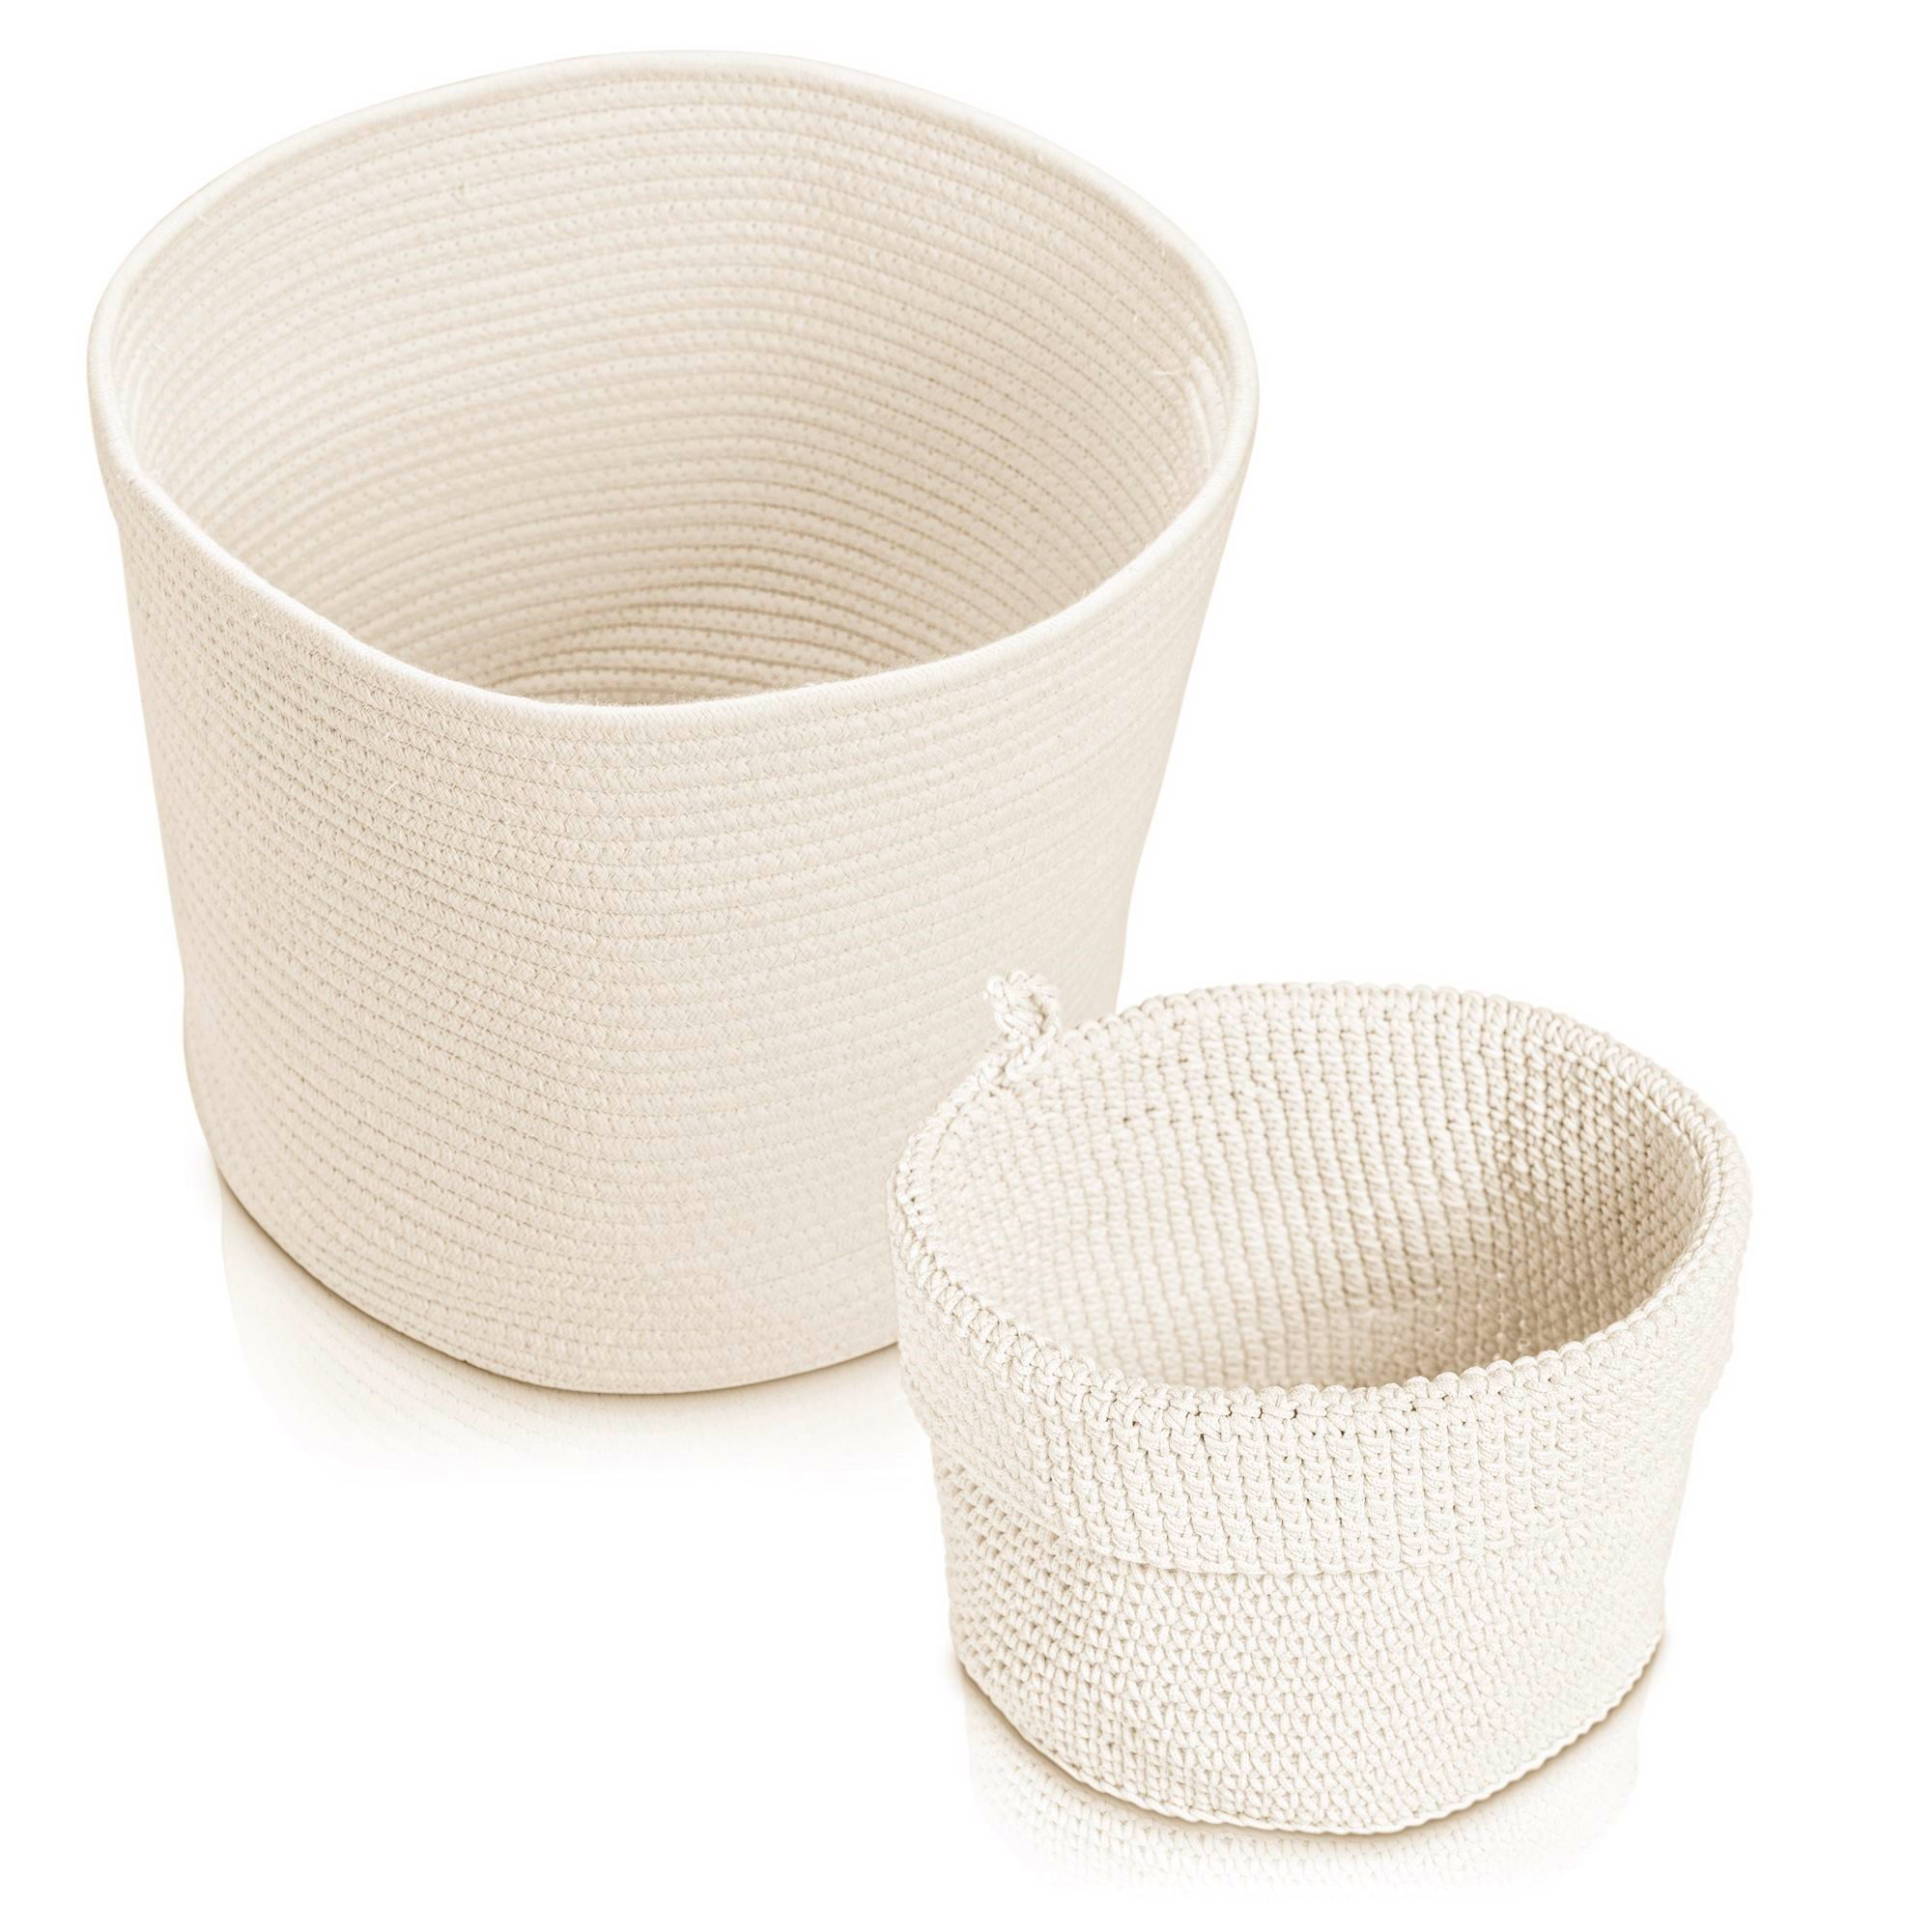 Rope Basket Organizer Combo Set - Eco-Friendly, Natural Color and Tightly Woven - Medium Size 15 x 13 inch Cotton Rope Basket, with Bonus 8 x 6 inch Nylon Rope Basket - Mold Resistant and Decorative by Helpful Picks (Image #1)